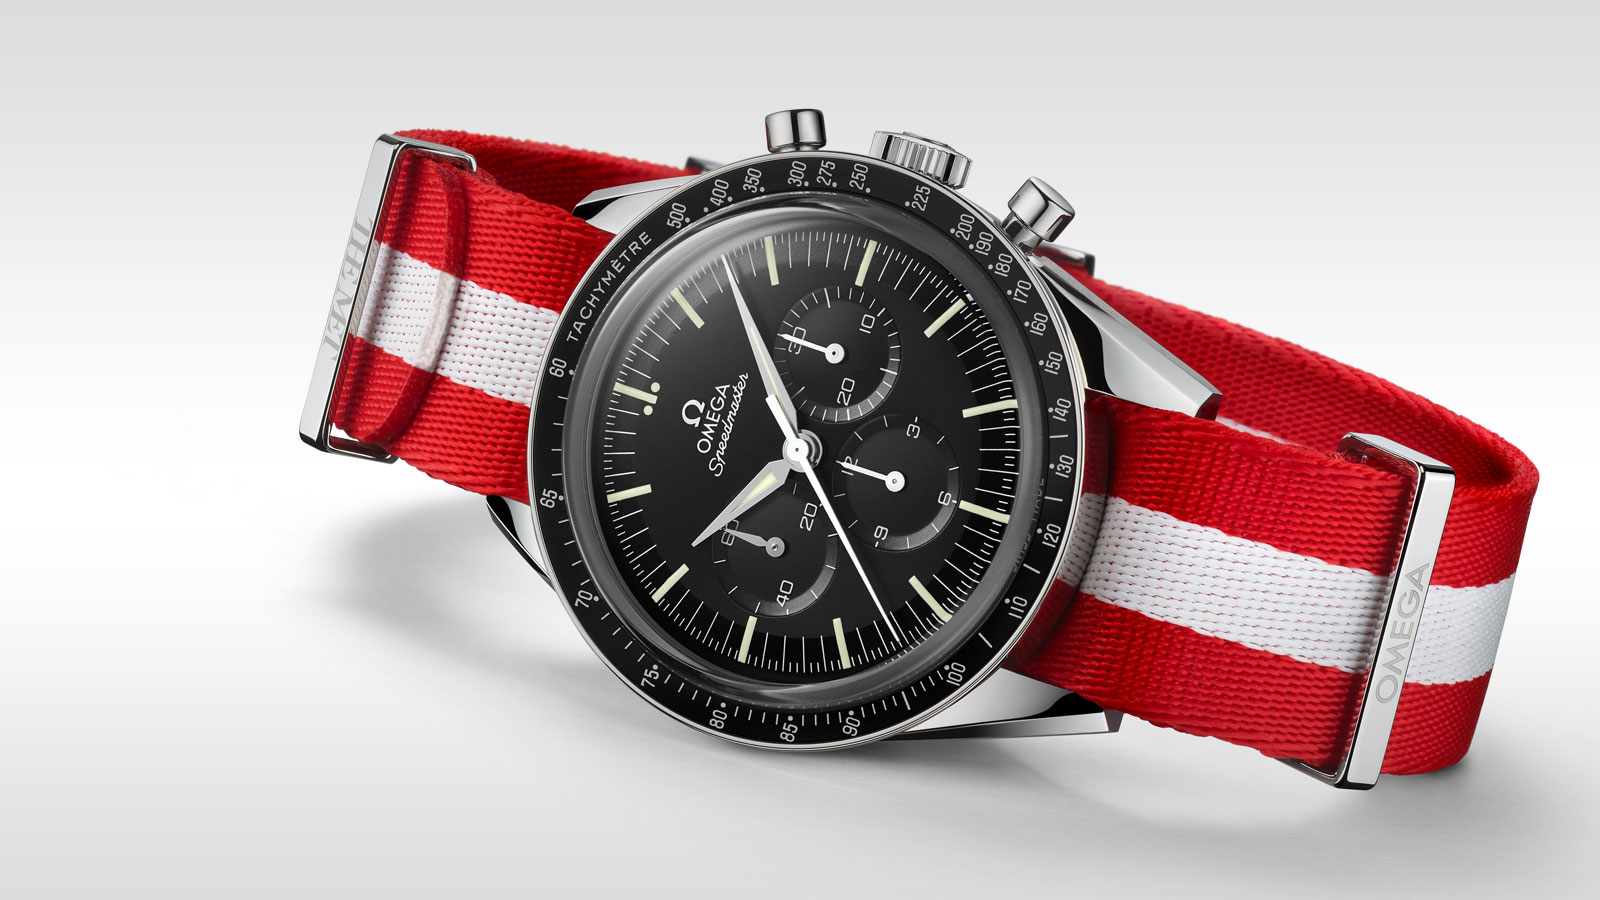 Speedmaster Moonwatch Moonwatch Chronograph 39.7 mm - 311.32.40.30.01.002 - View 3